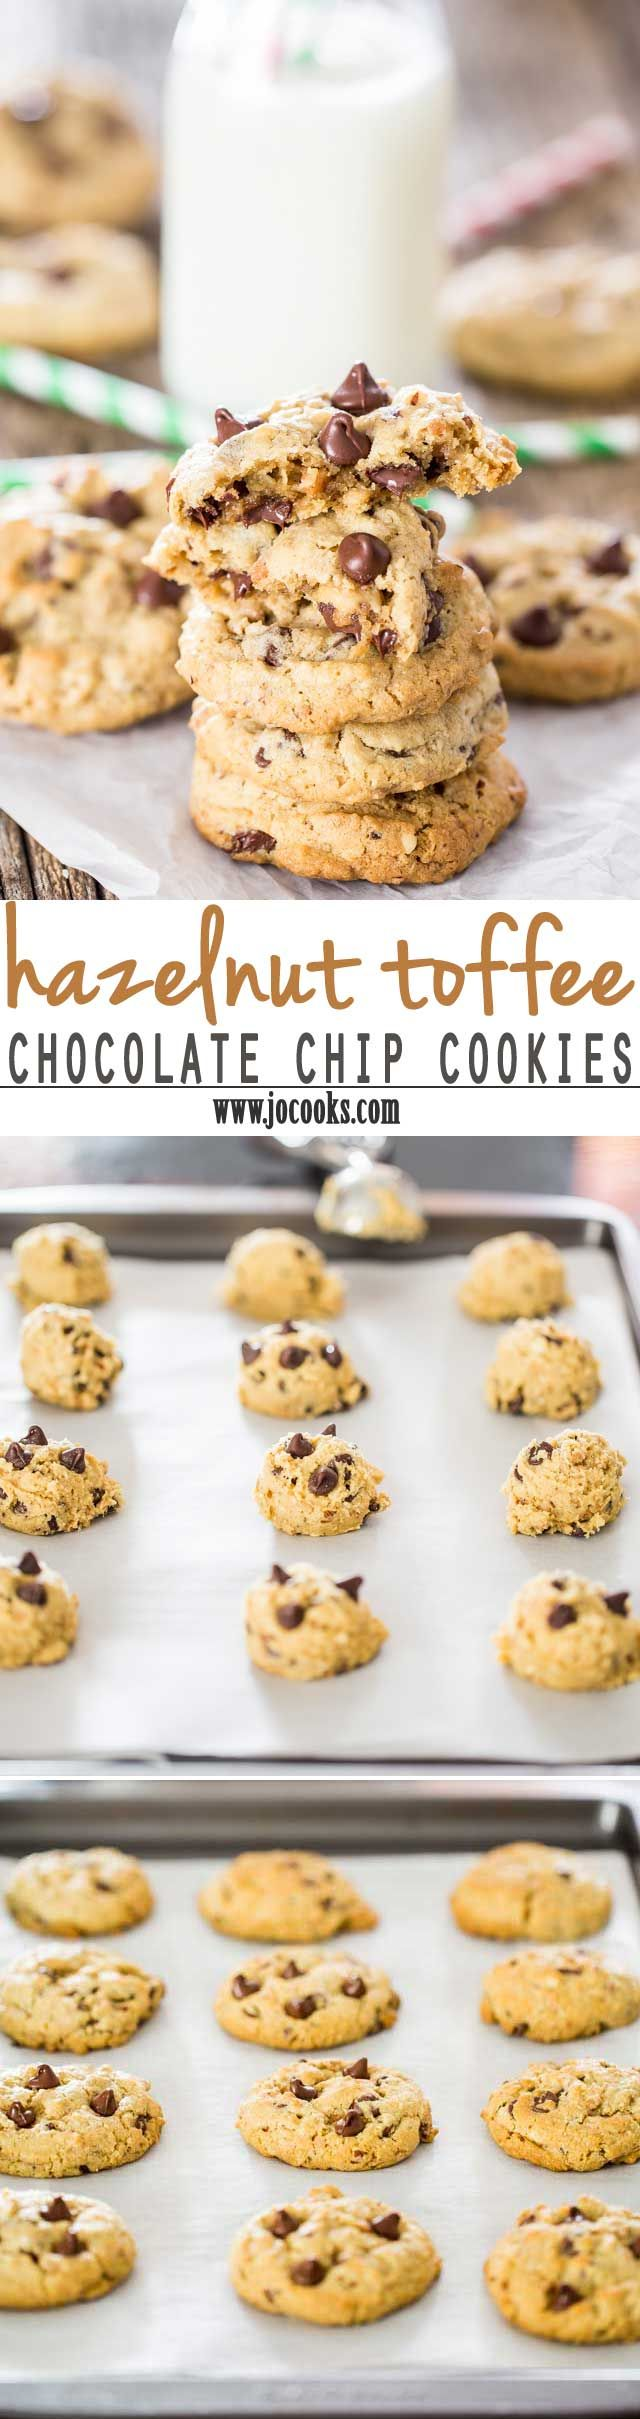 Hazelnut Toffee Chocolate Chip Cookies - delicious rich chocolate chip cookies loaded with hazelnuts and toffee bits. Totally irresistible and perfectly chewy cookies.